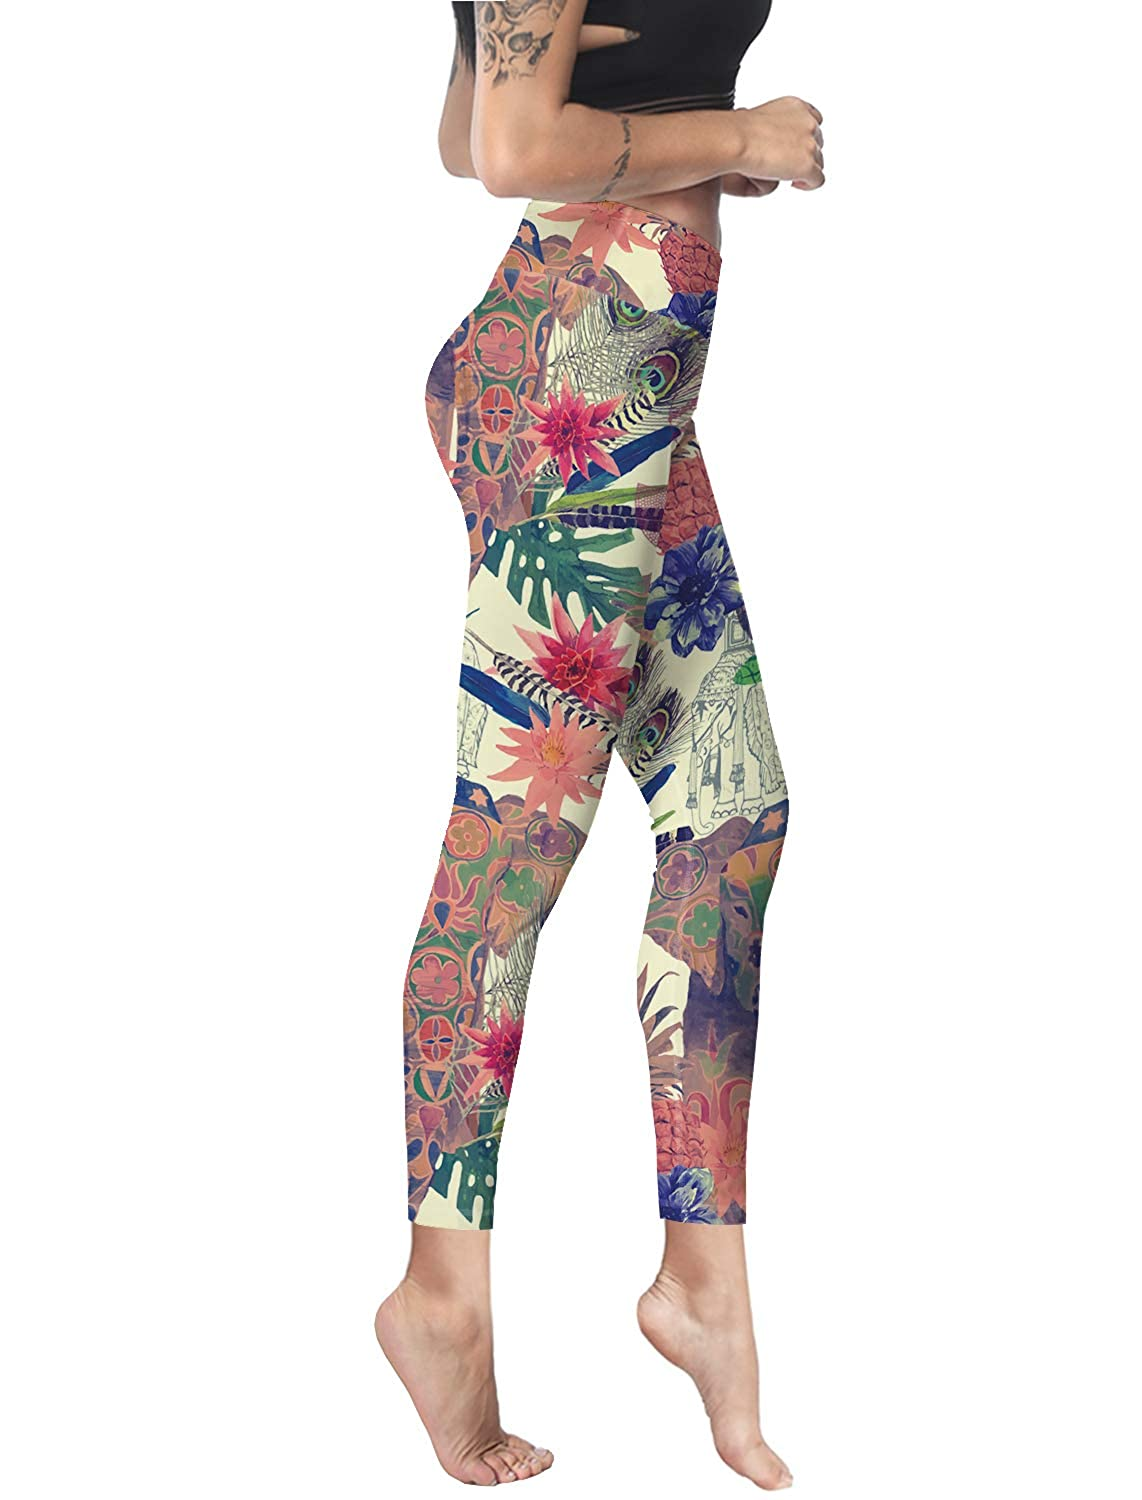 1cbd9eb7ffd29c Women Stretch High Waist Yoga Pants Running Tights Indian Style Peacock  Feather Elephant Pattern Capris Compression Workout Leggings at Amazon  Women's ...